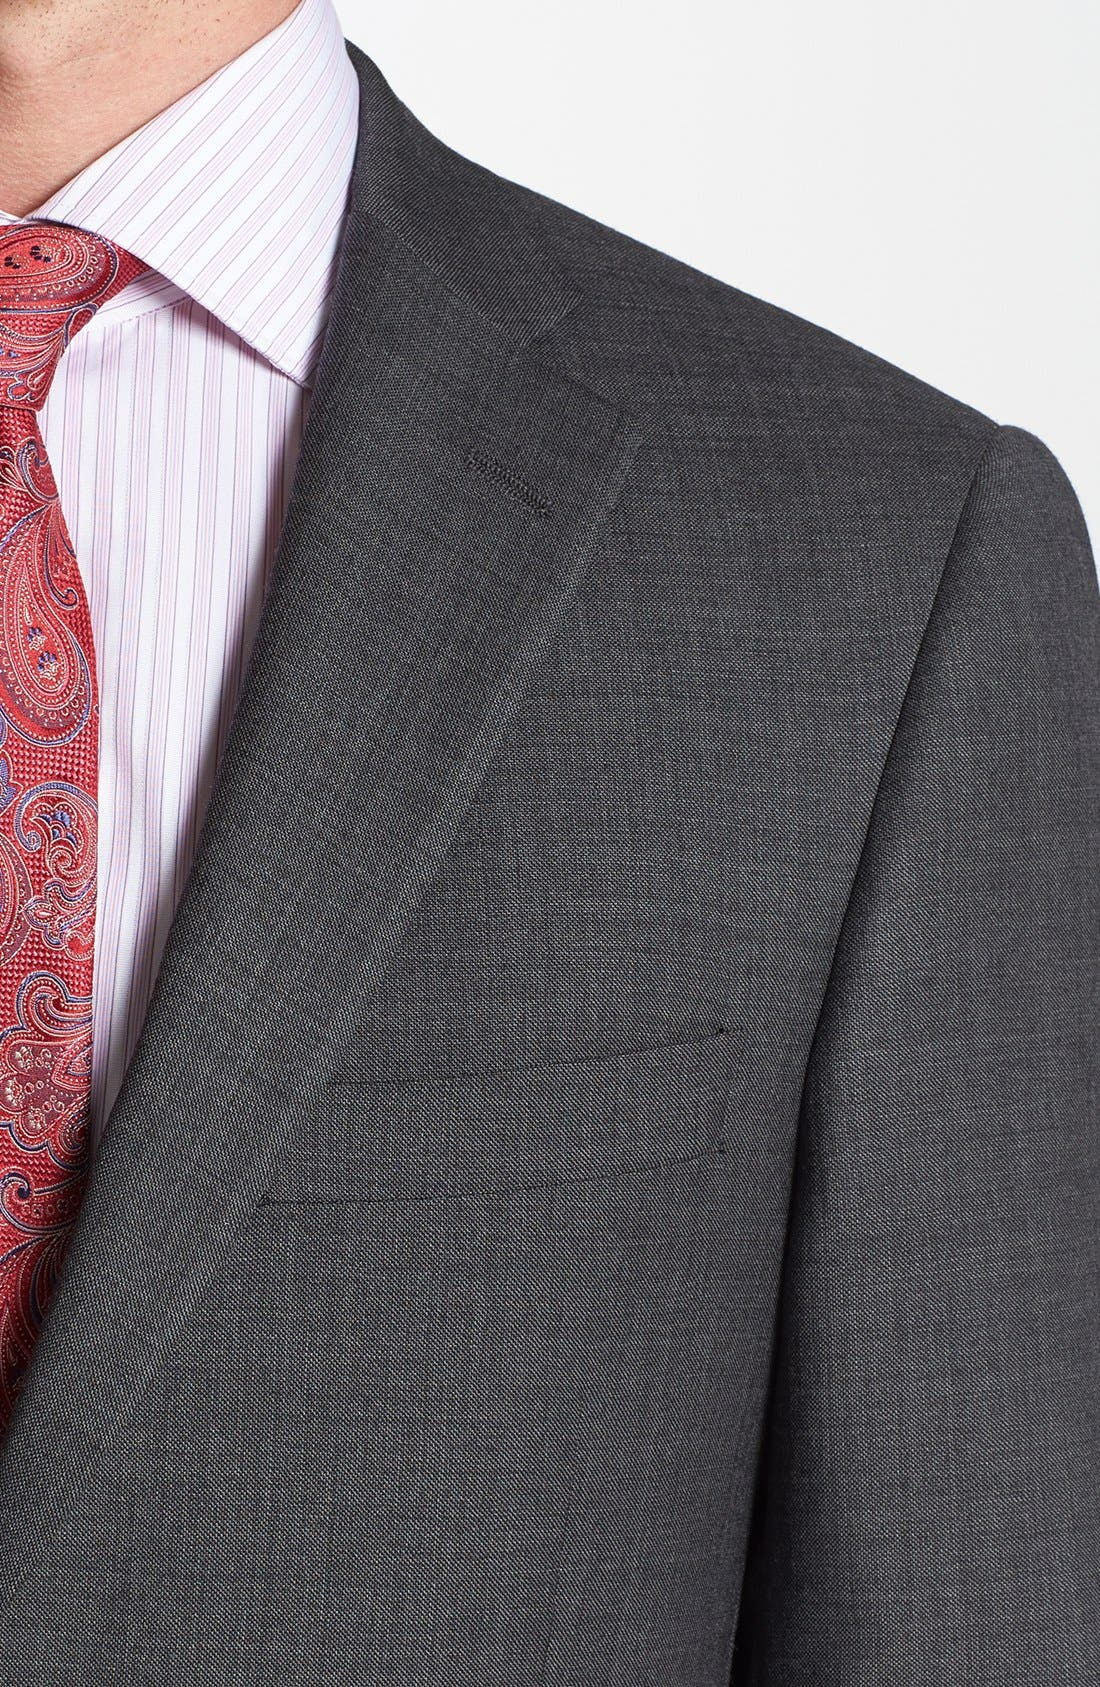 Alternate Image 2  - Hart Schaffner Marx 'New York' Classic Fit Wool Suit